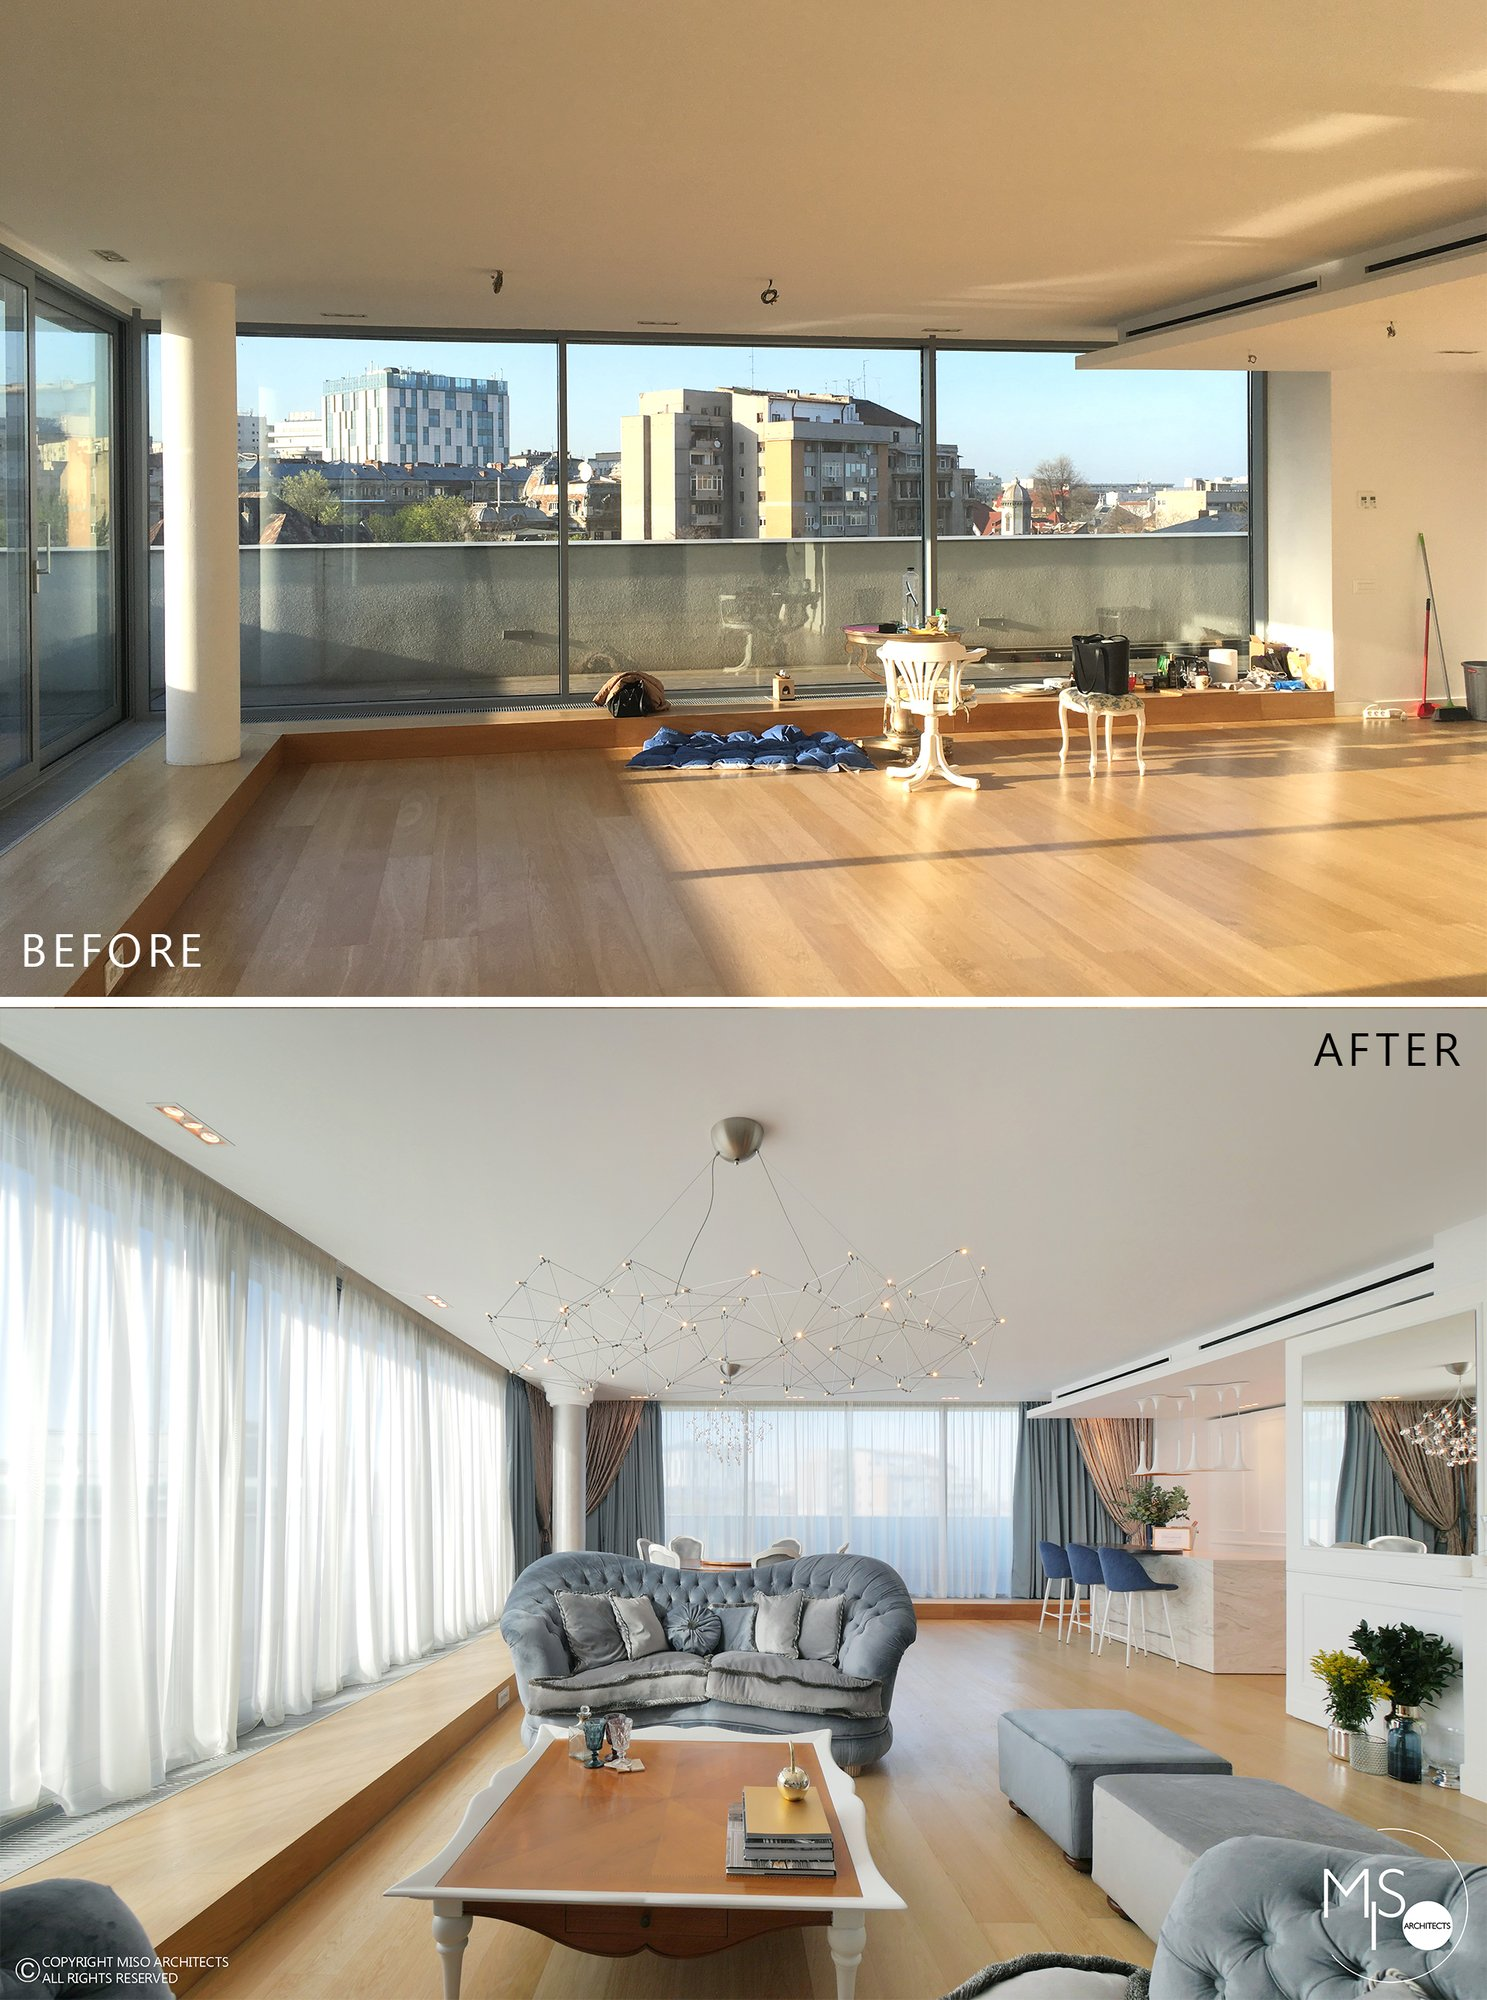 Miso-Architects-before-and-after.jpg